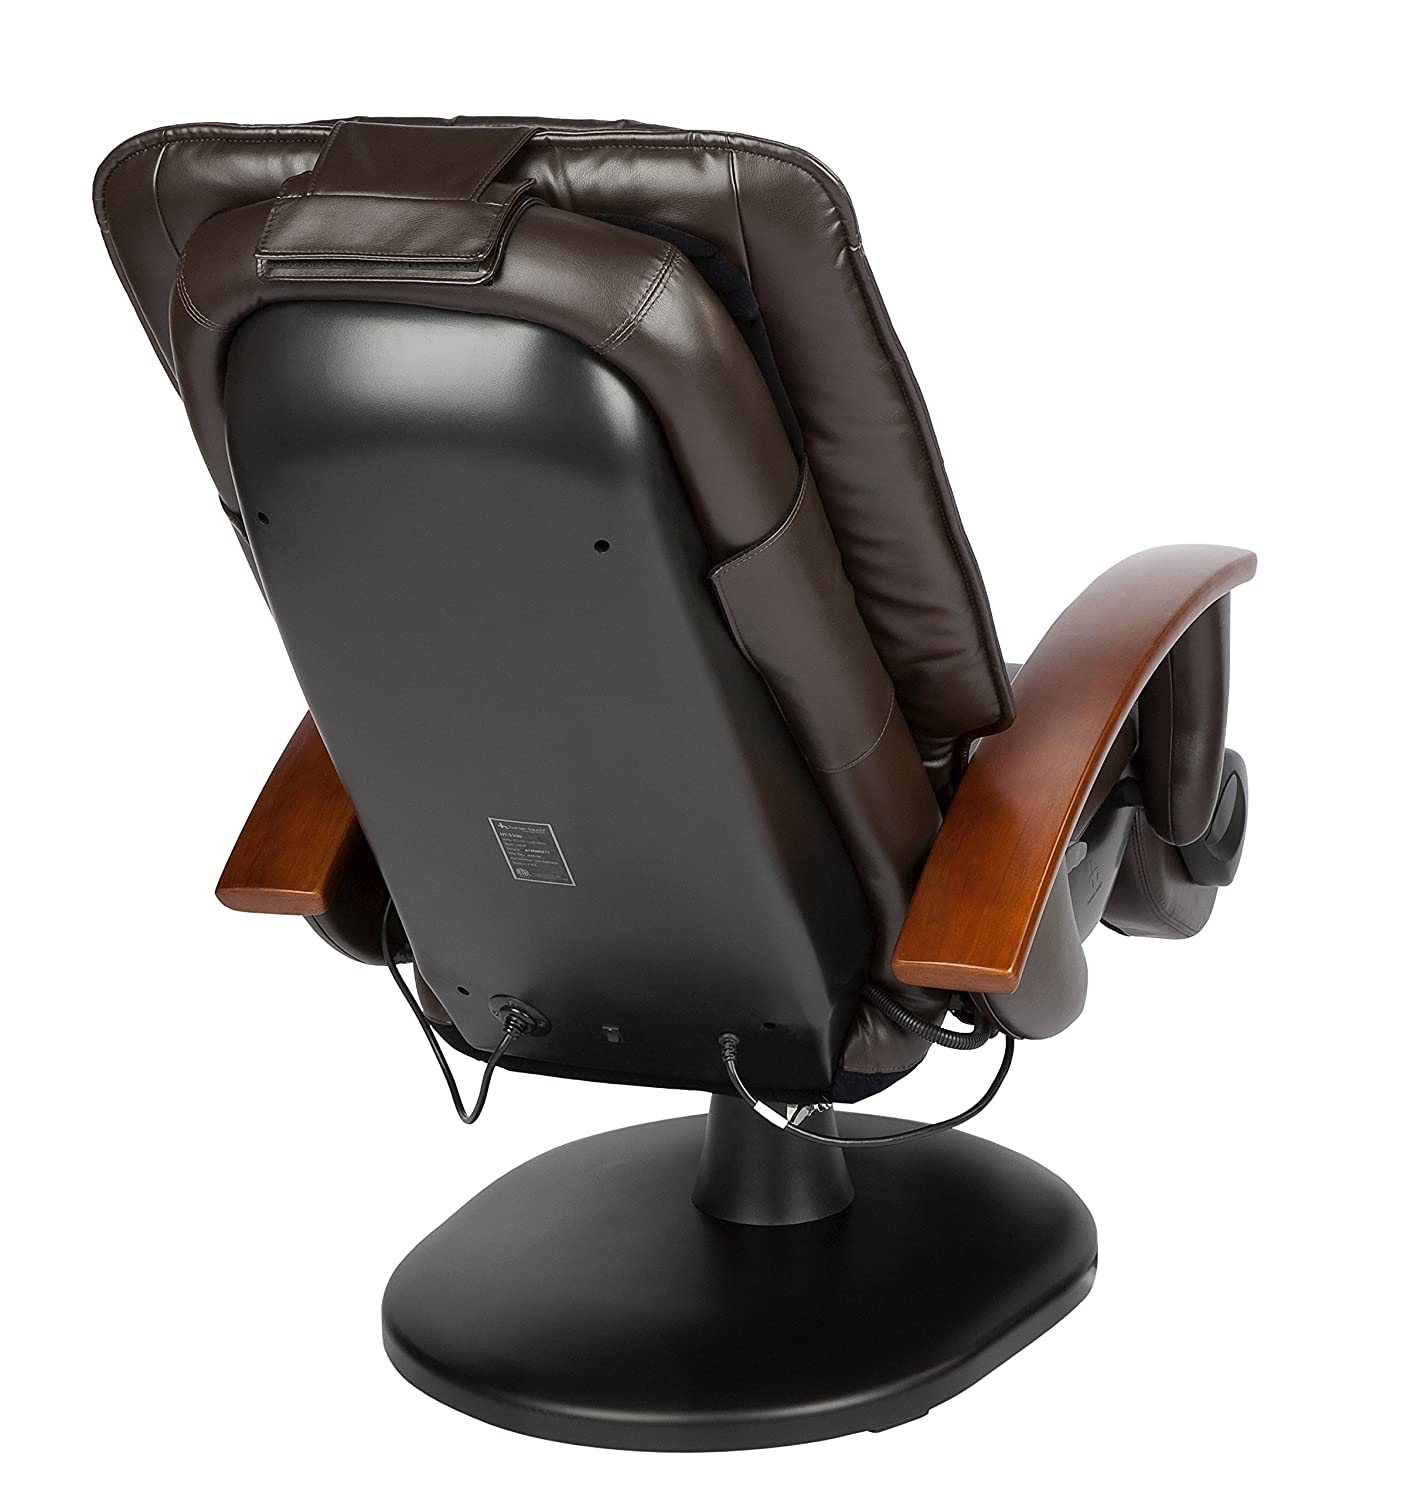 Amazon Human Touch HT 3300 Wood Accent Massage Chair